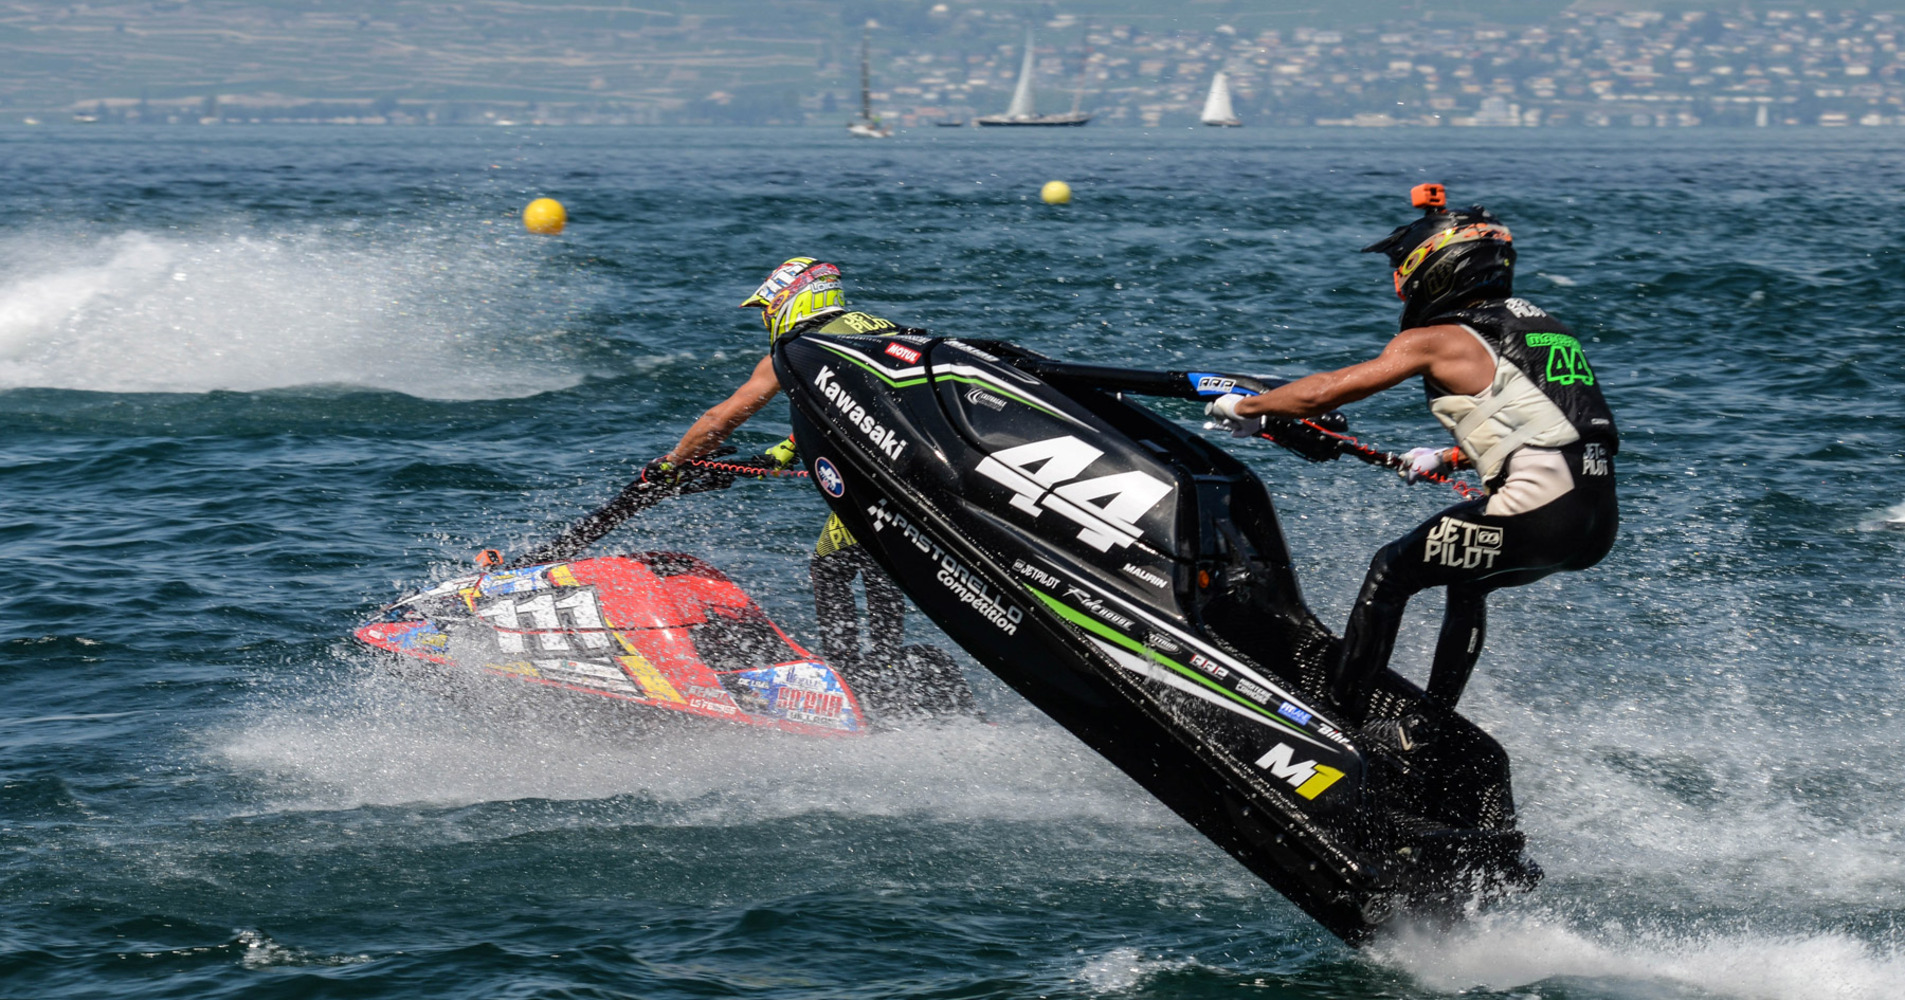 Raphael Maurin was very fast on Lake Geneva here battling with Steven Loiodice very consistent the whole weekend